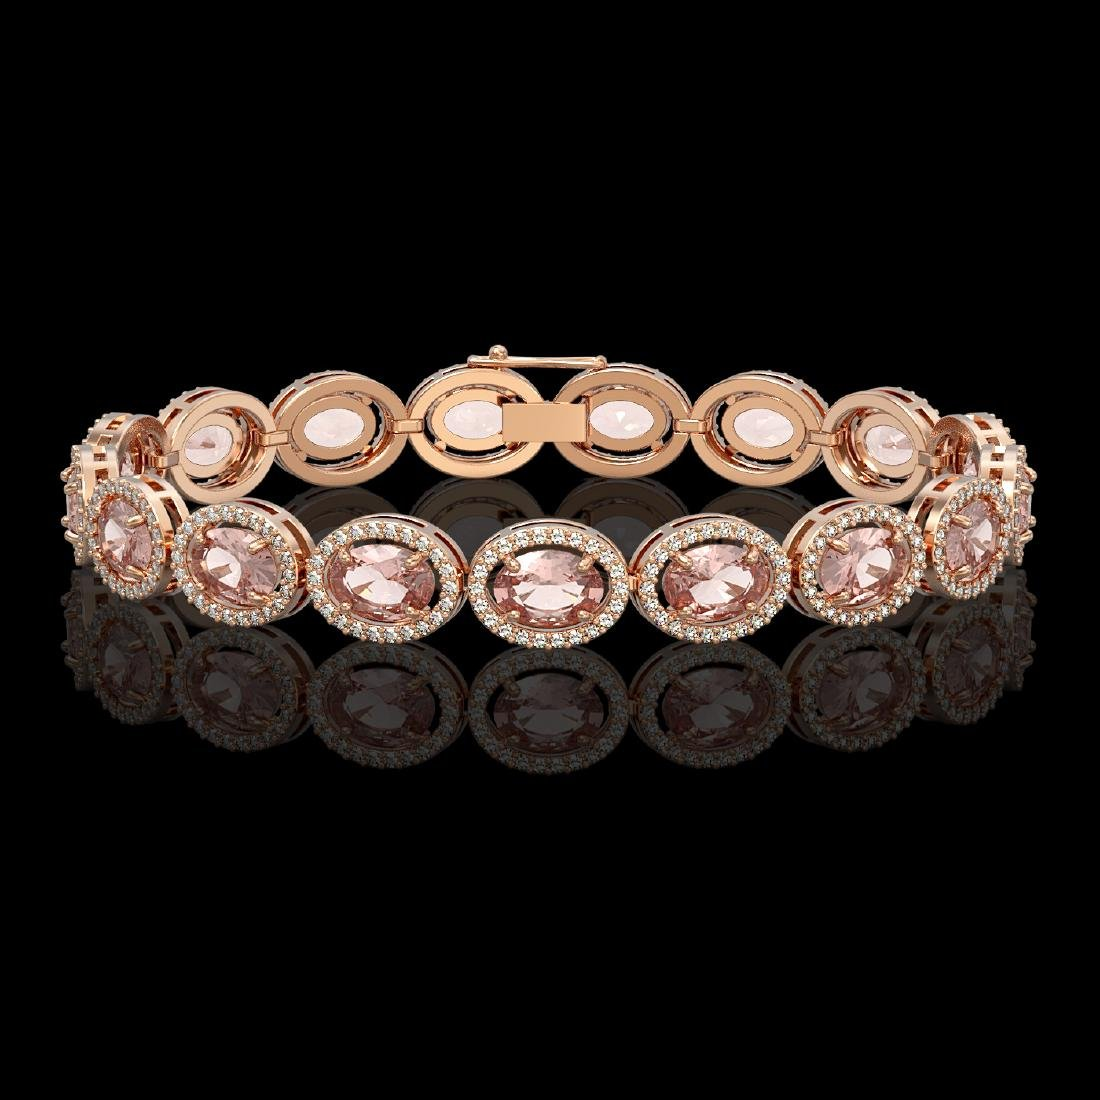 20.18 CTW Morganite & Diamond Halo Bracelet 10K Rose